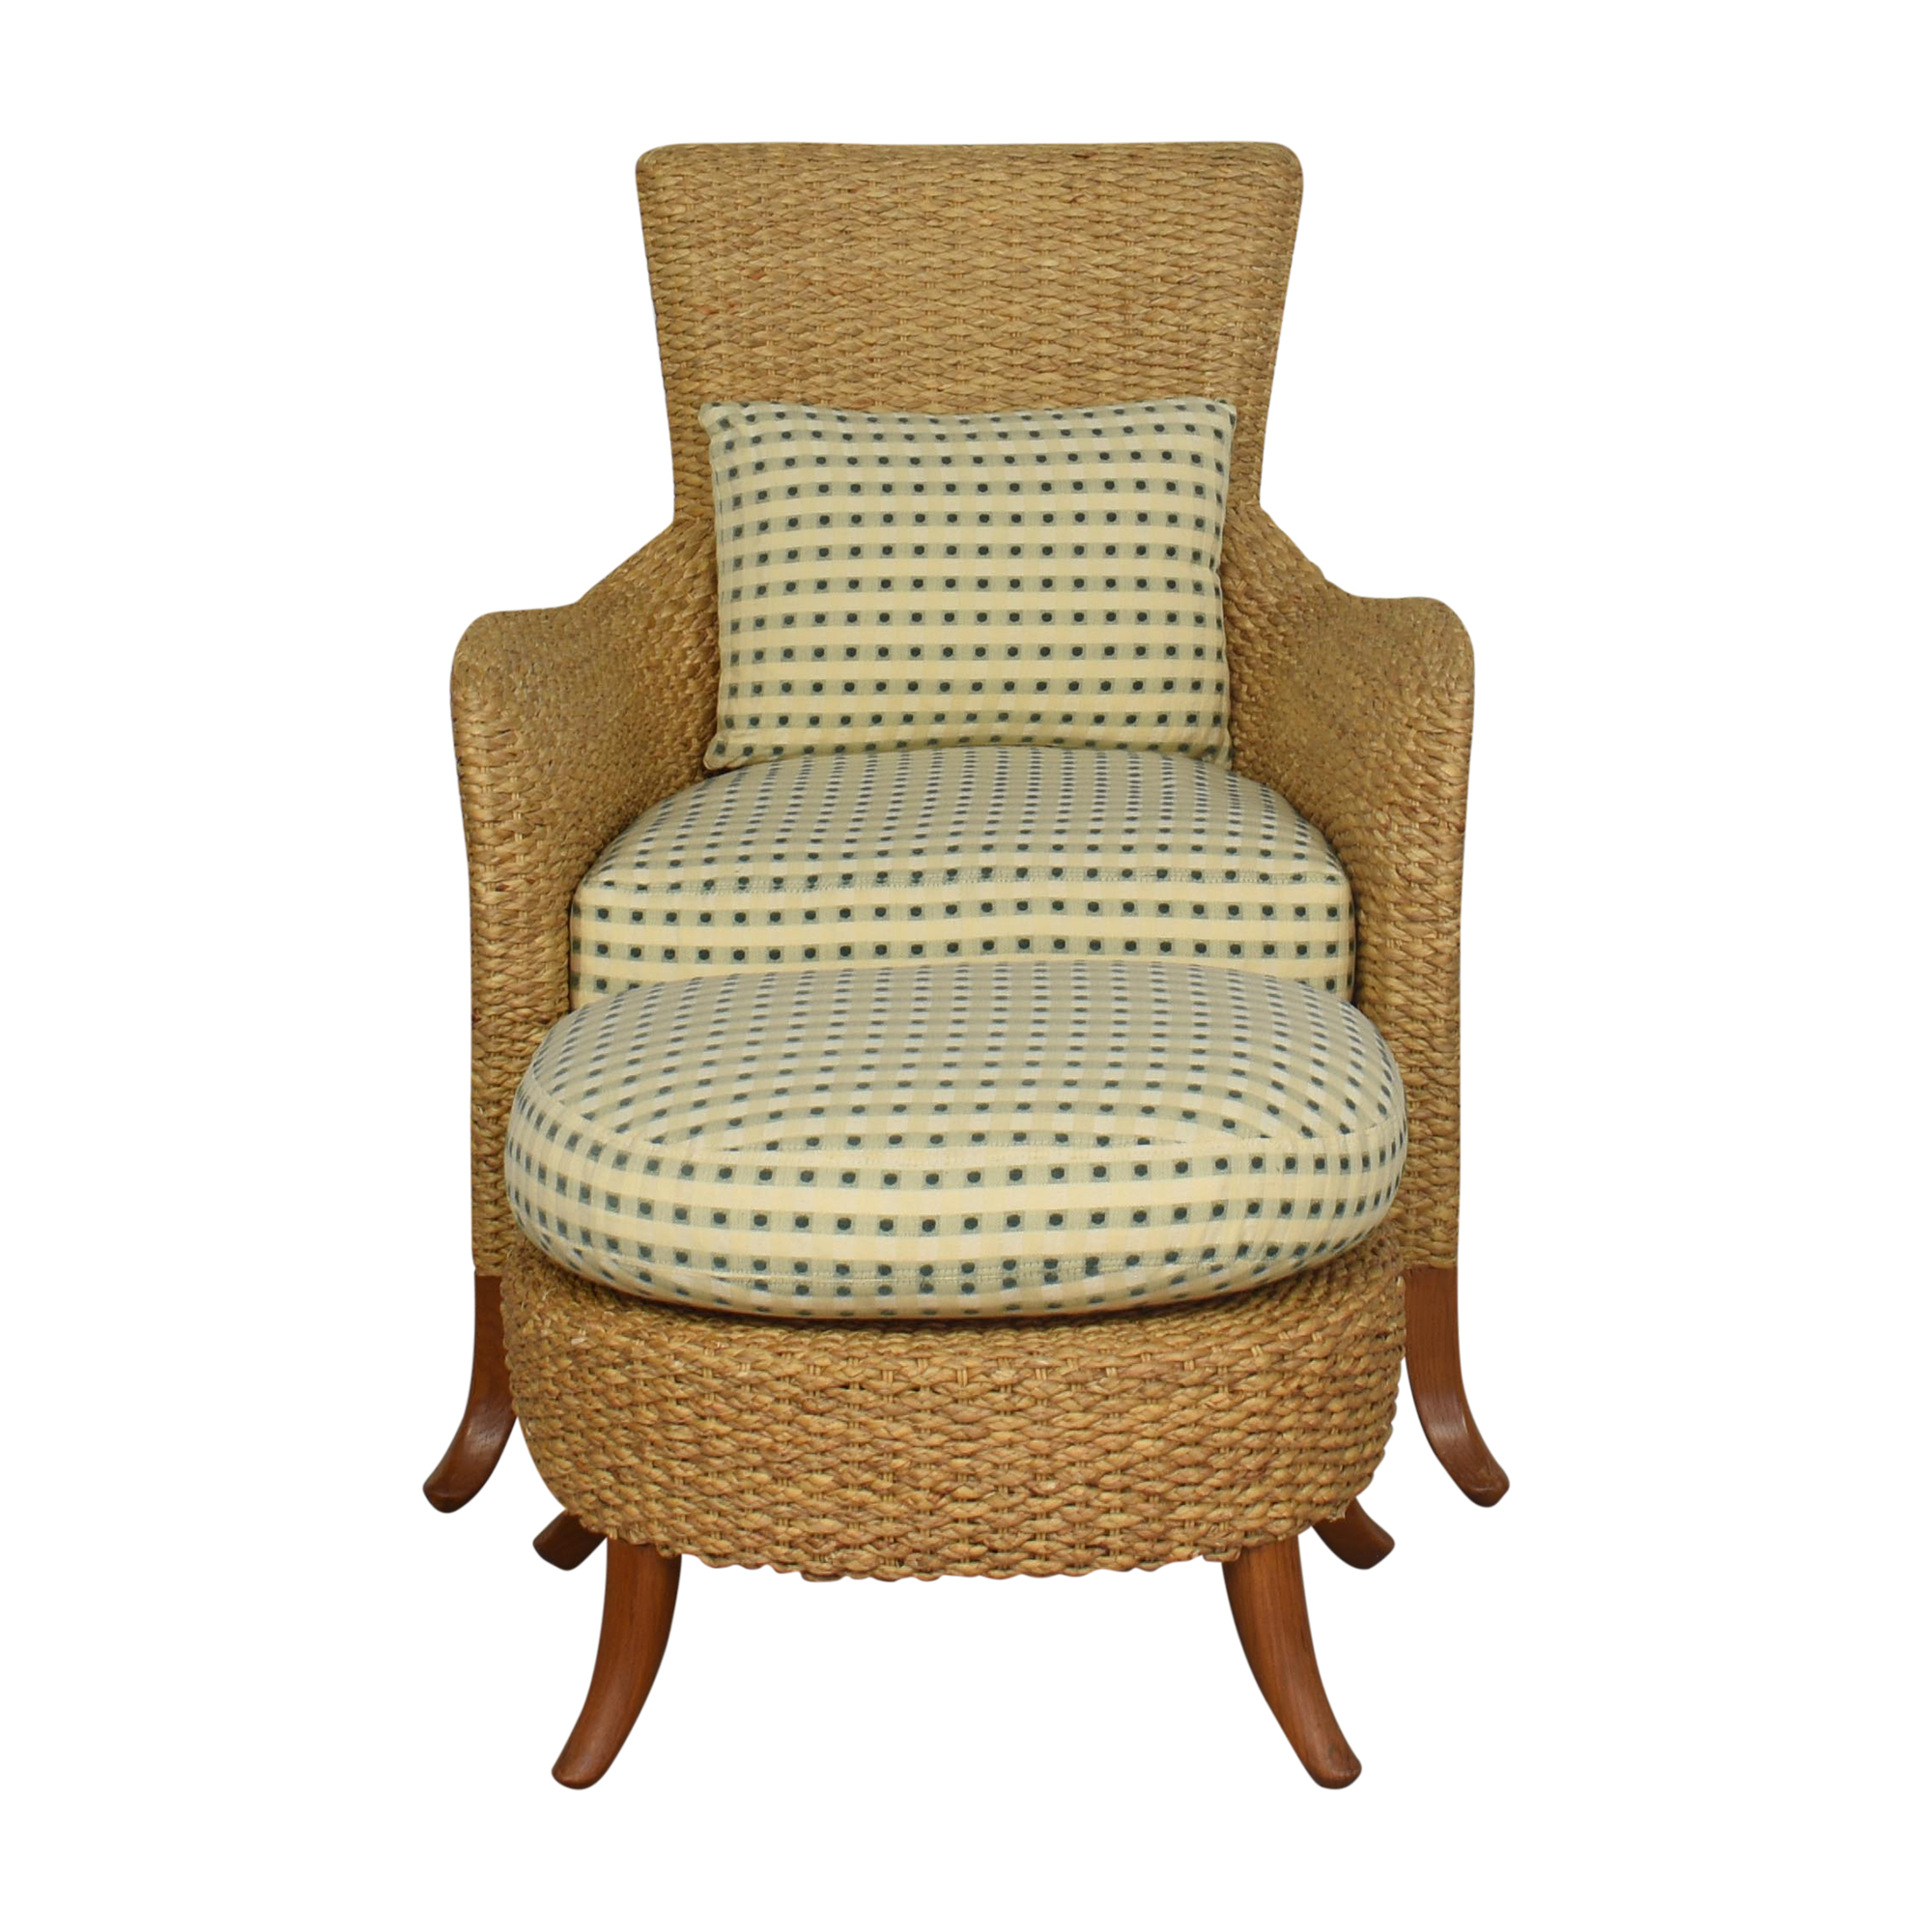 Century Furniture Century Furniture Woven Chair with Ottoman used